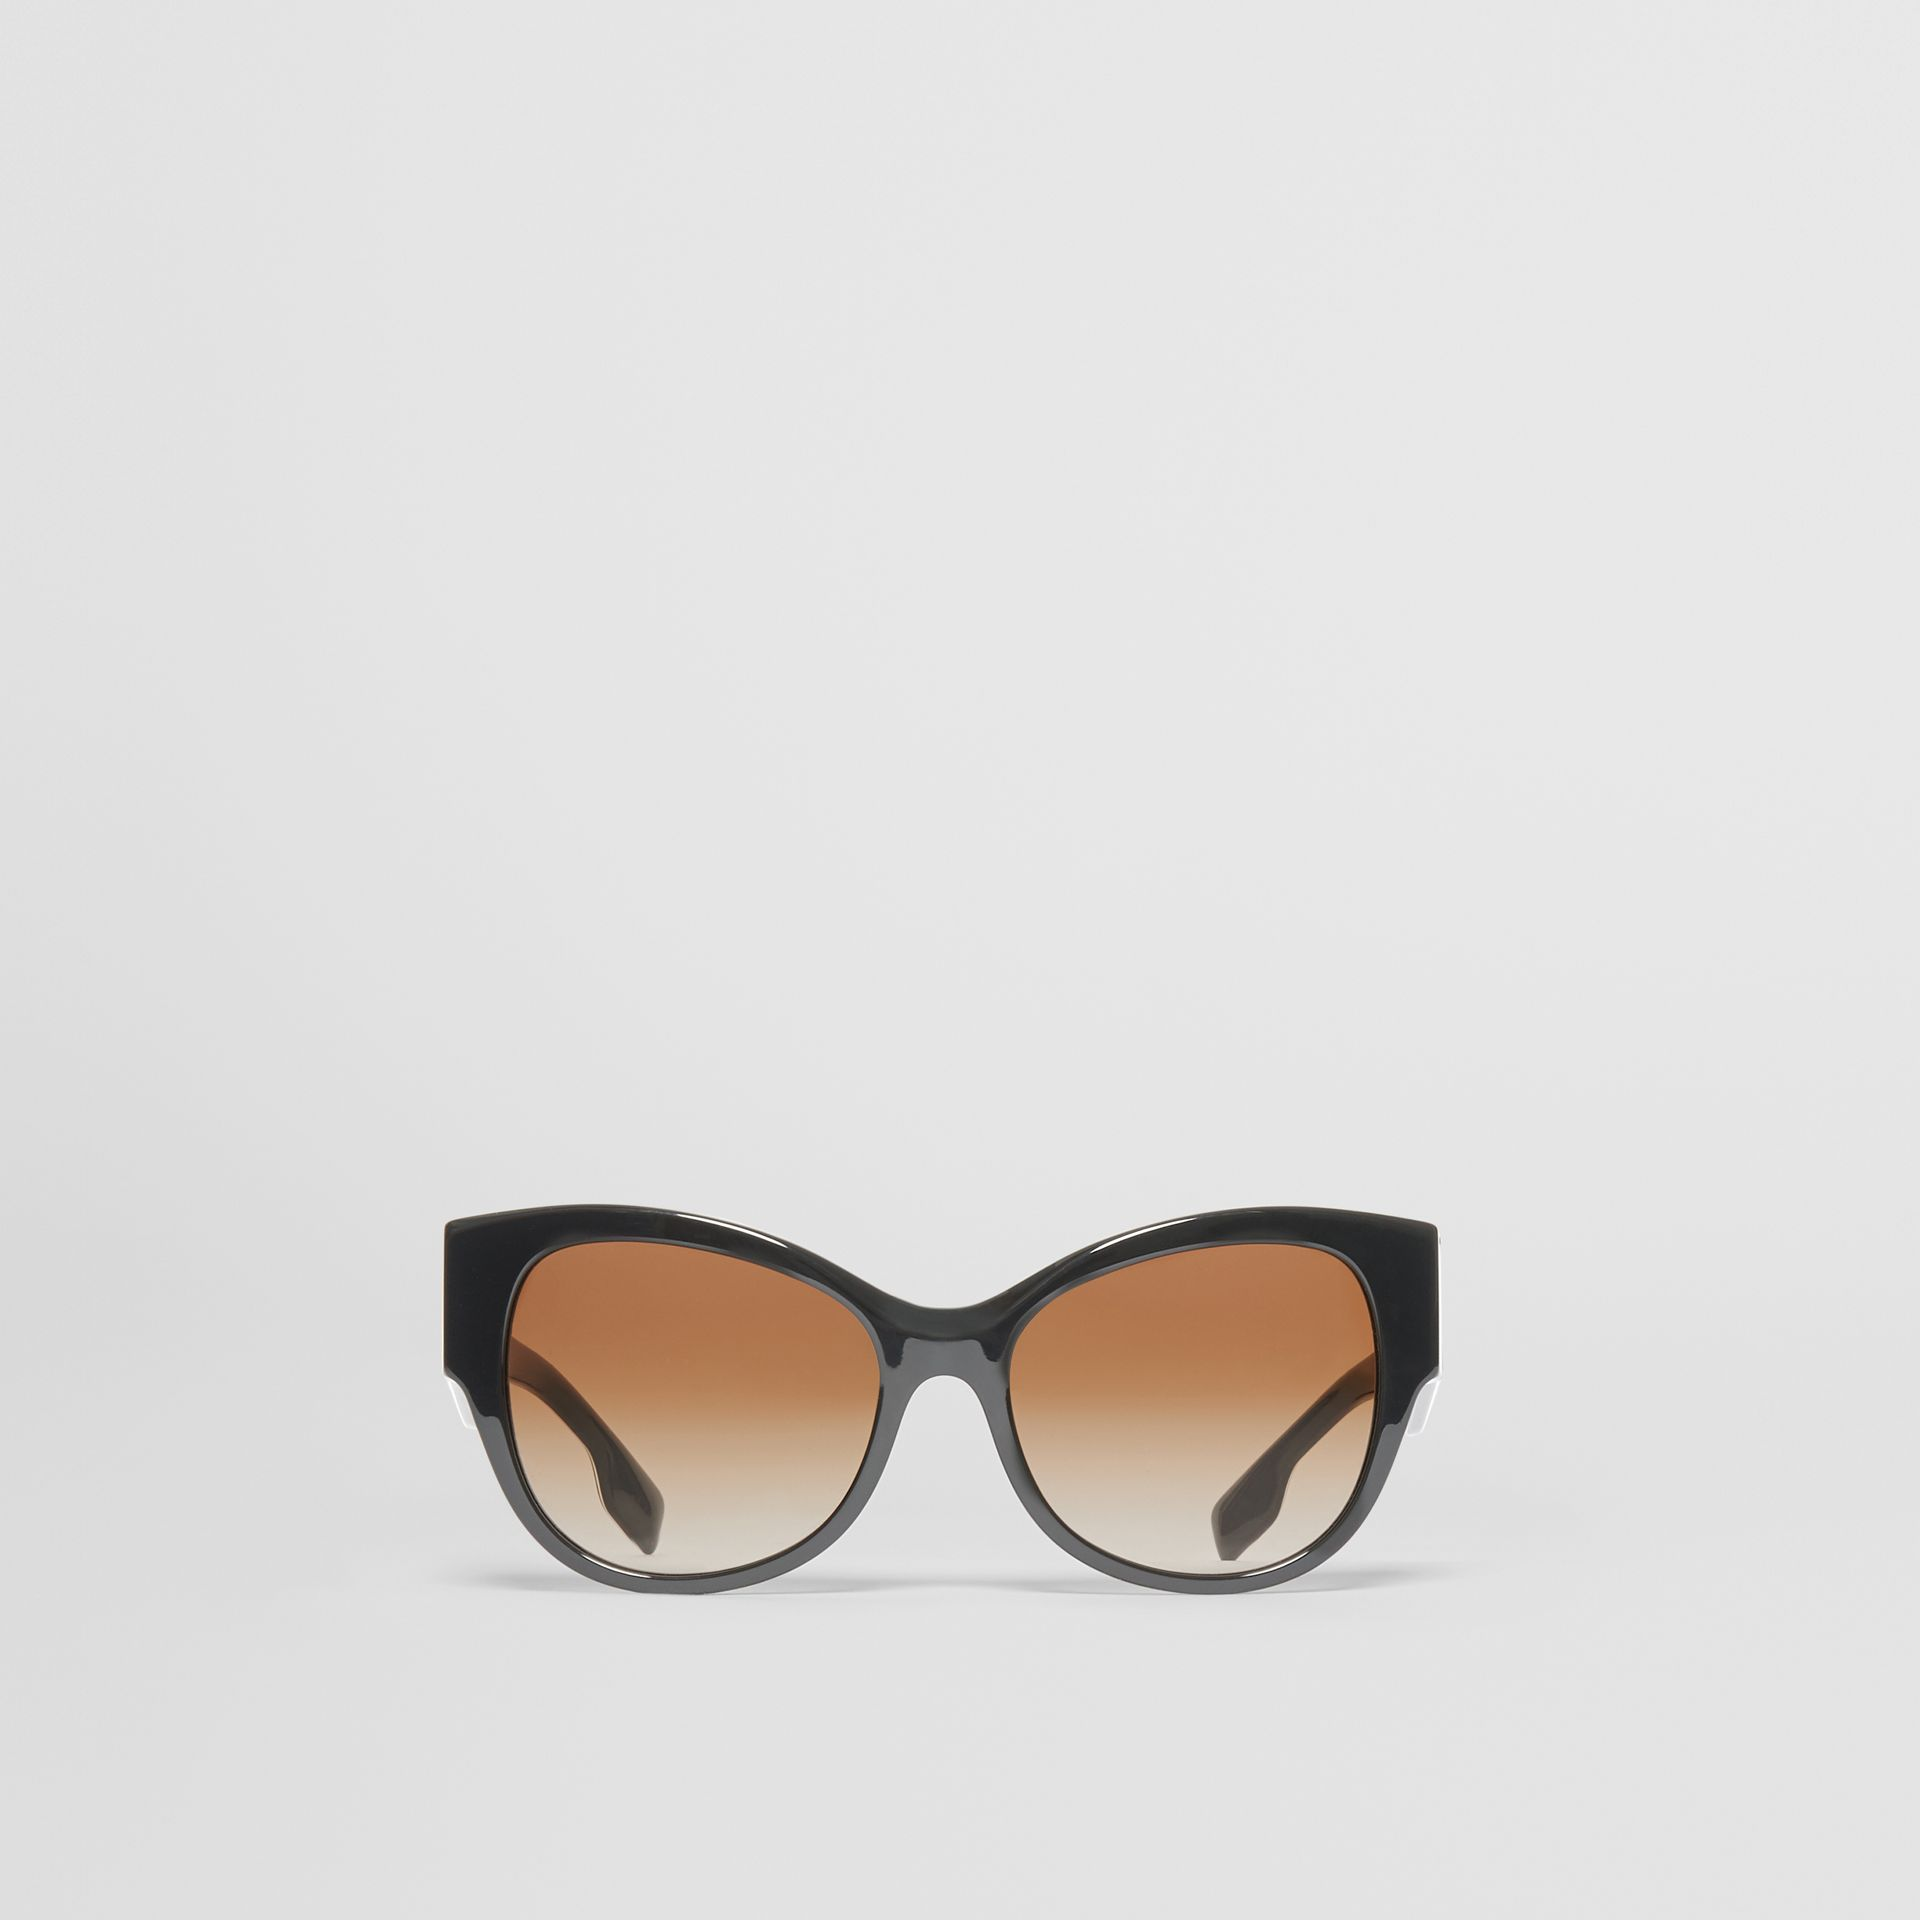 Monogram Detail Butterfly Frame Sunglasses in Black / Beige - Women | Burberry - gallery image 0